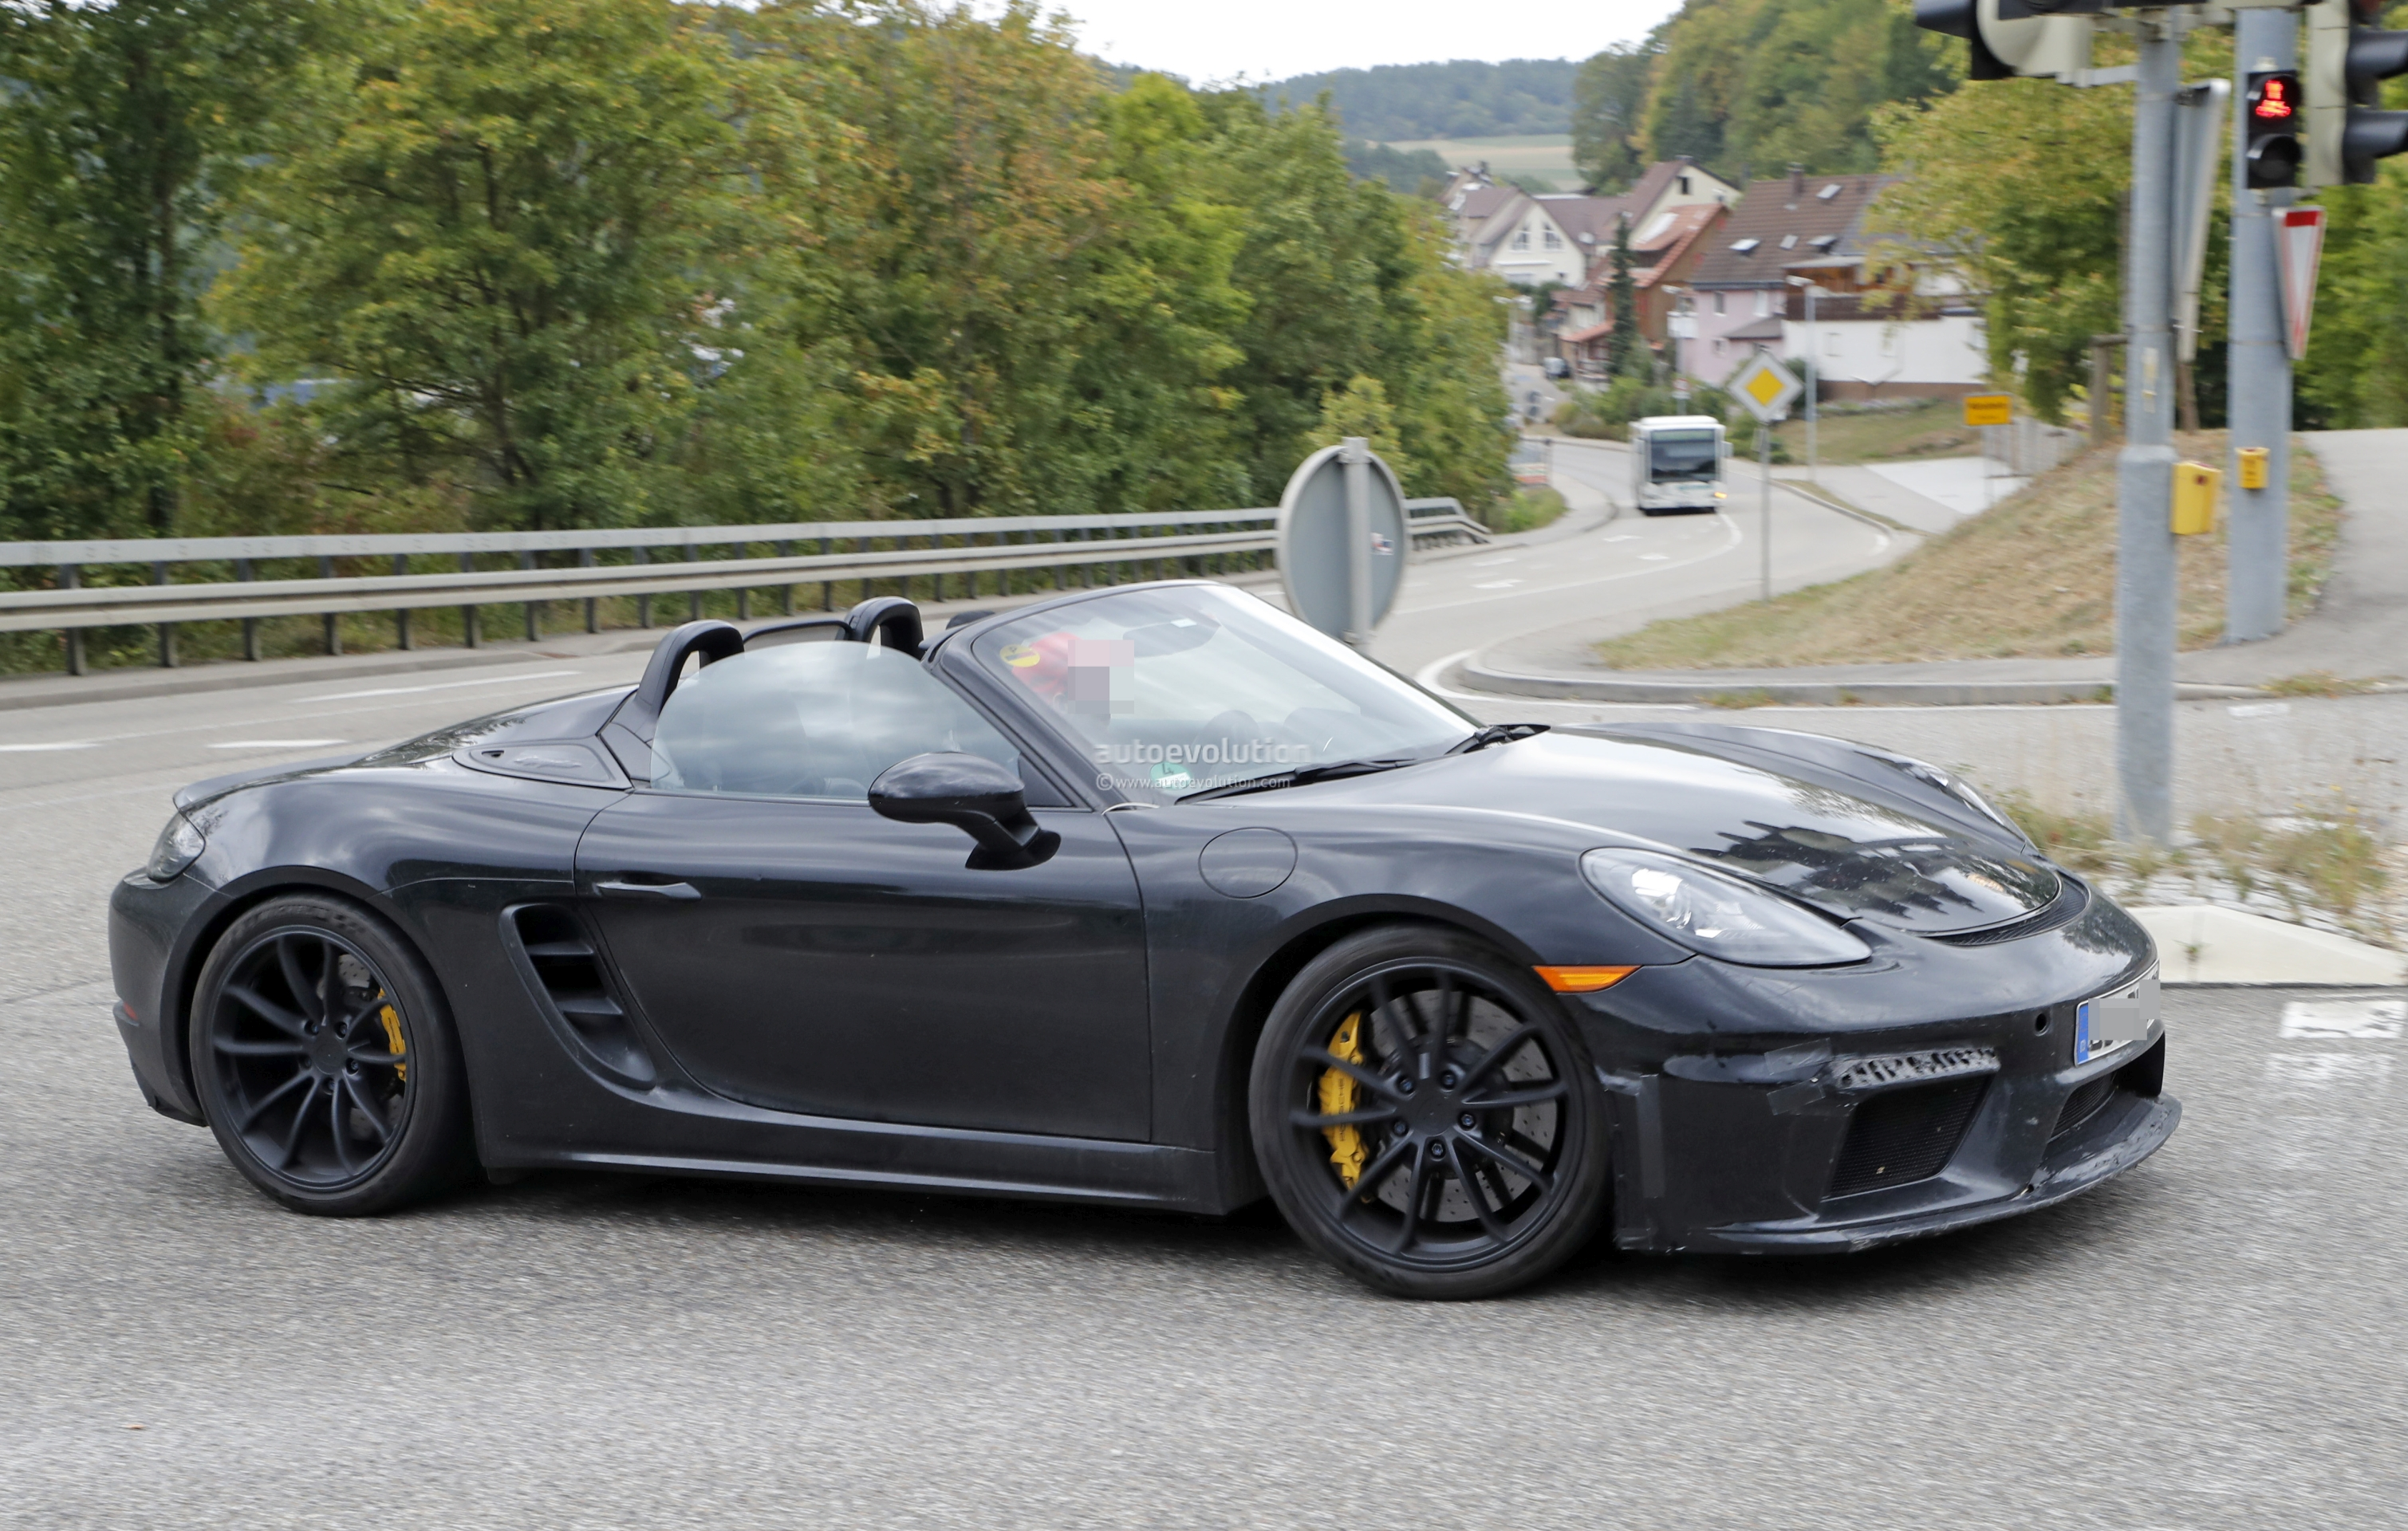 2019 Porsche Boxster Spyder Prototype Shows Production